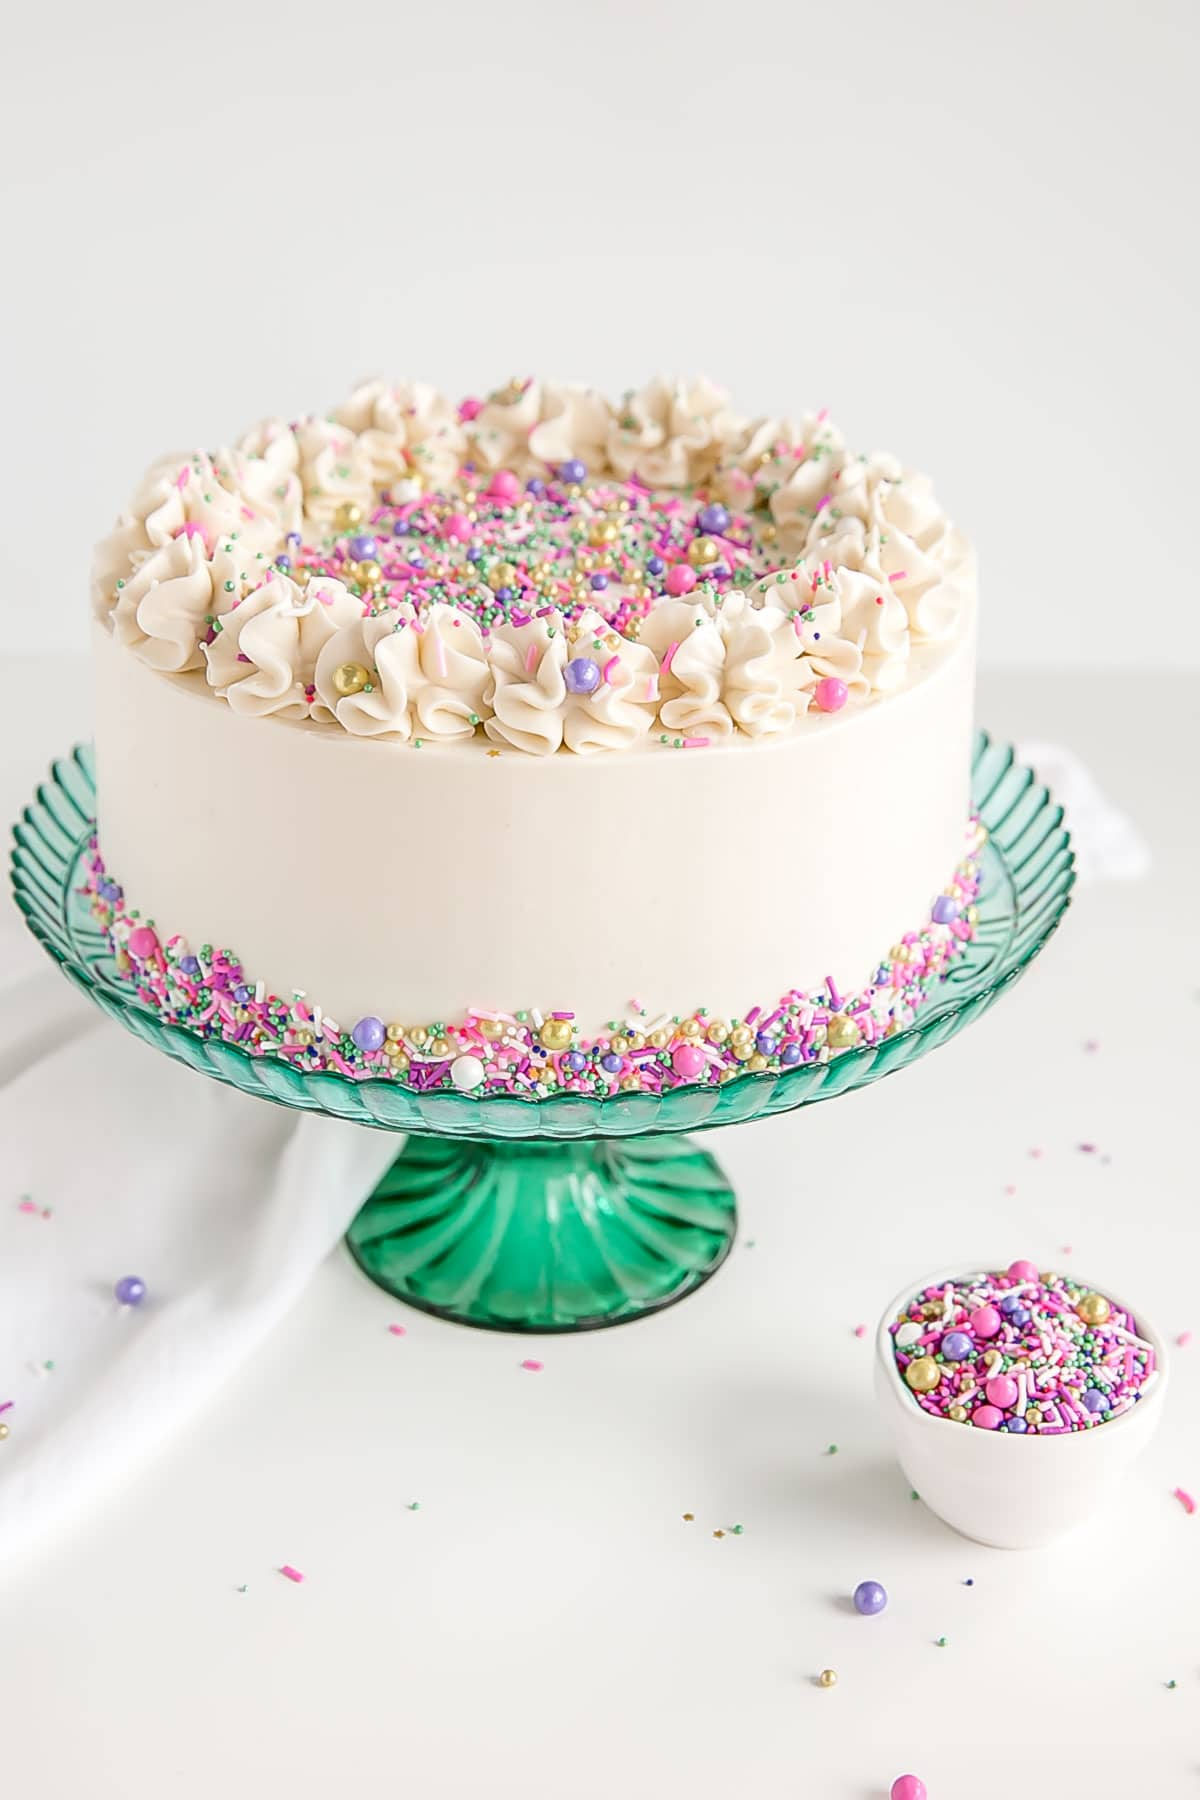 Classic white cake recipe with white swiss meringue buttercream.